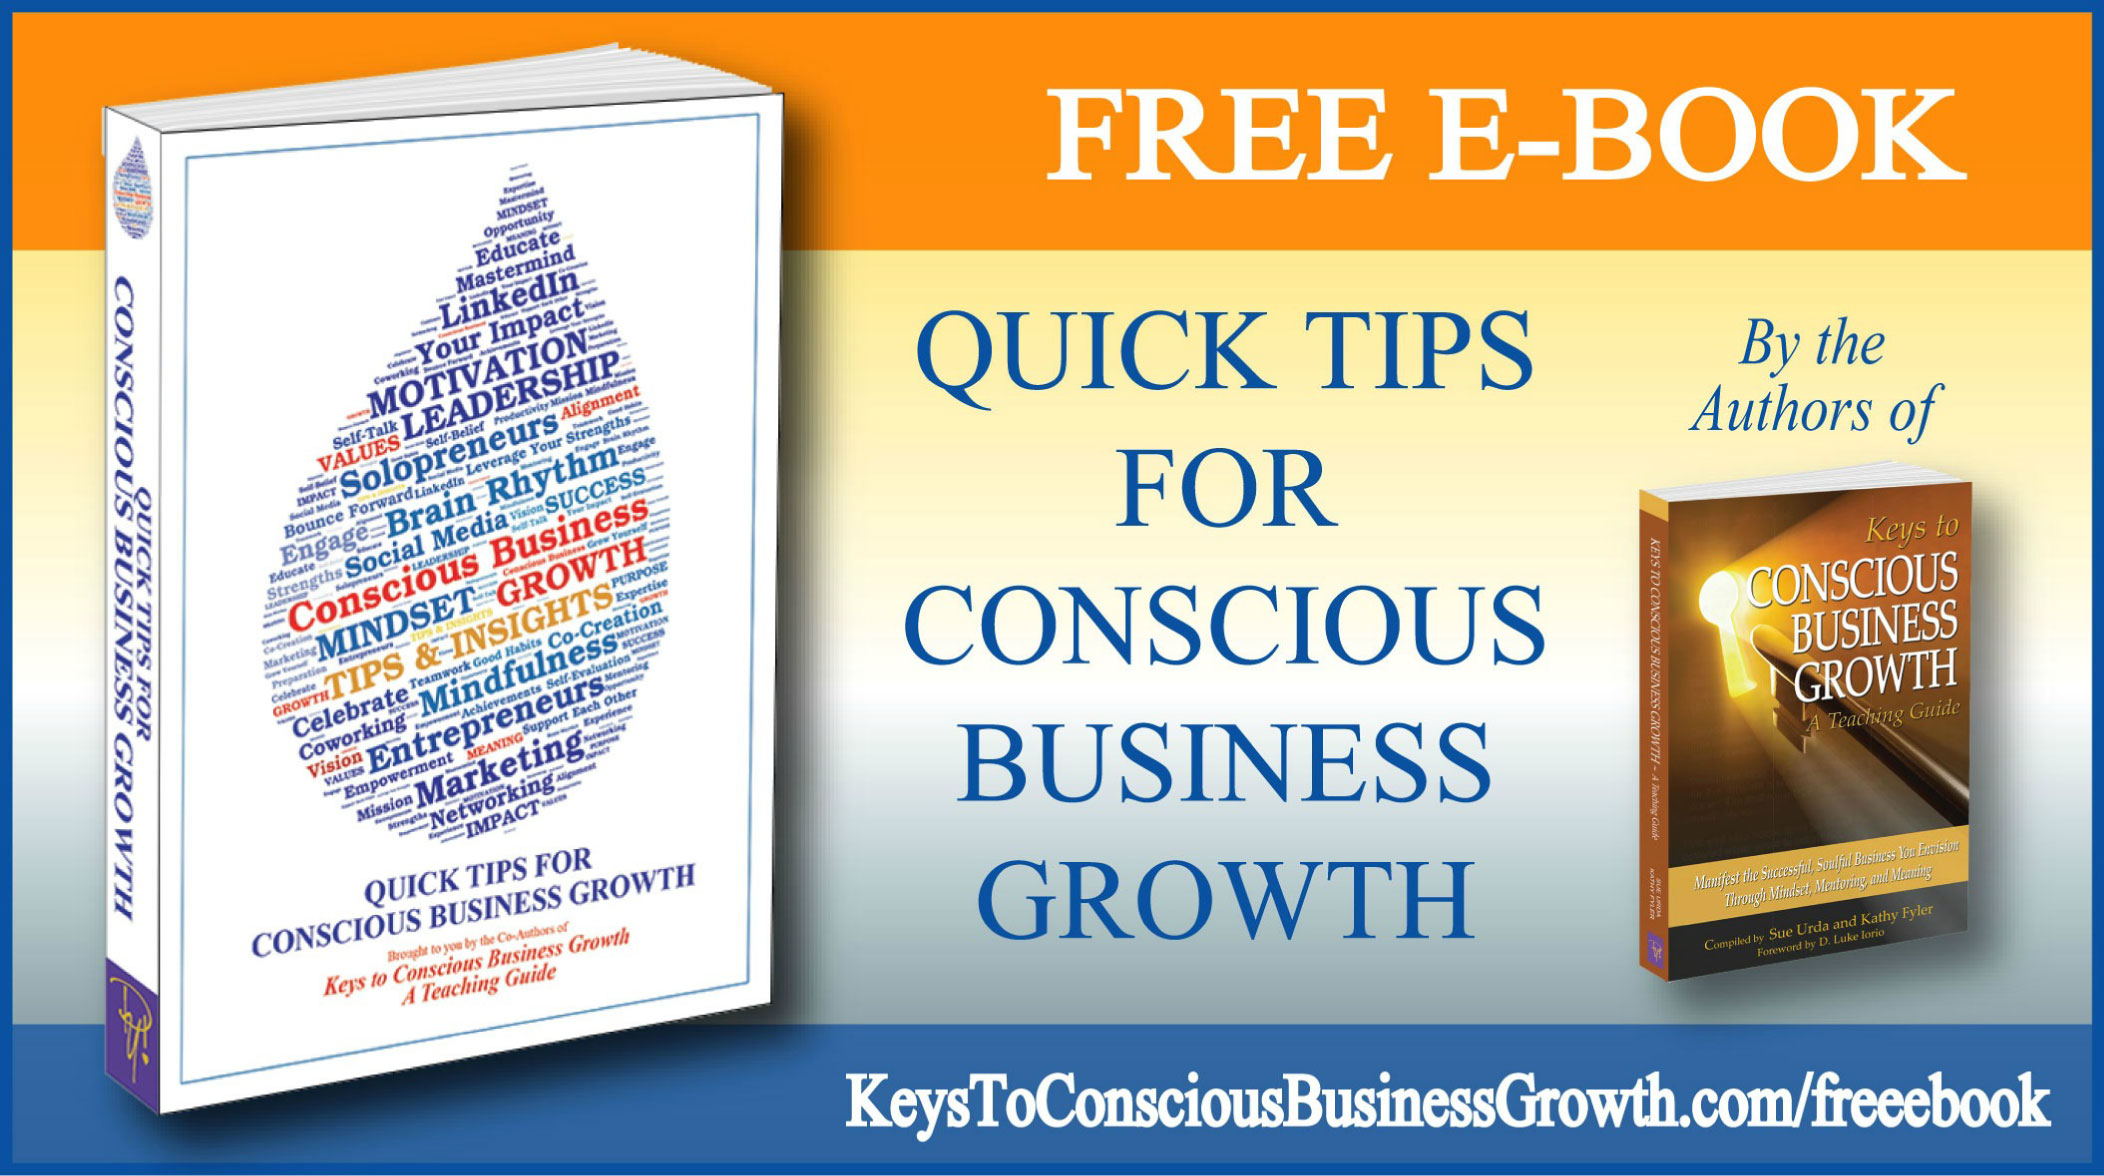 TIPS FOR CONSCIOUS BUSINESS GROWTH